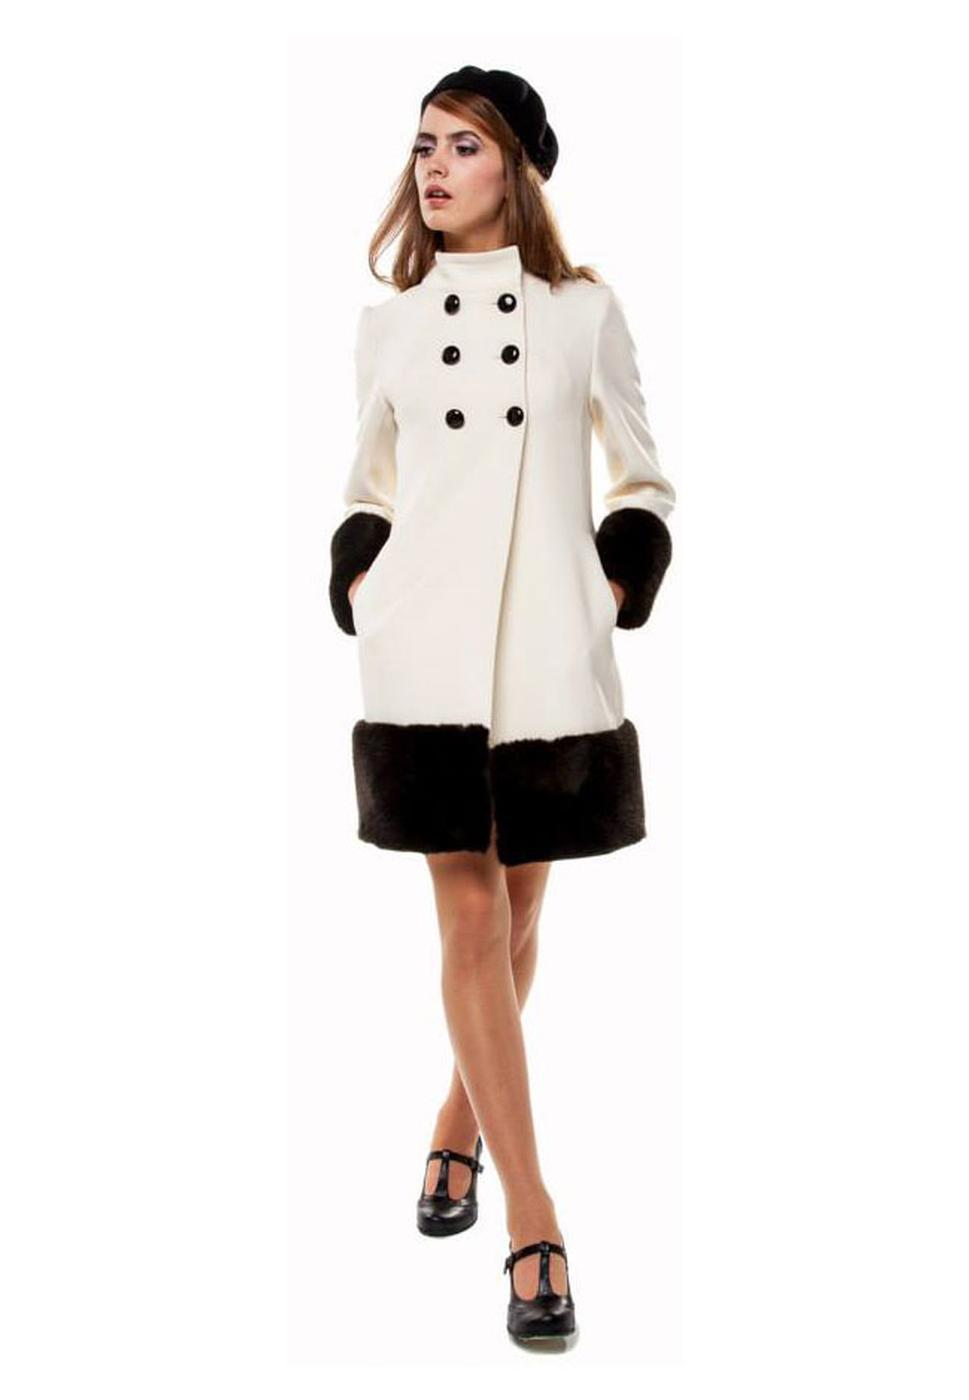 MARMALADE 60s Mod Winter Coat with Faux Fur Cuffs